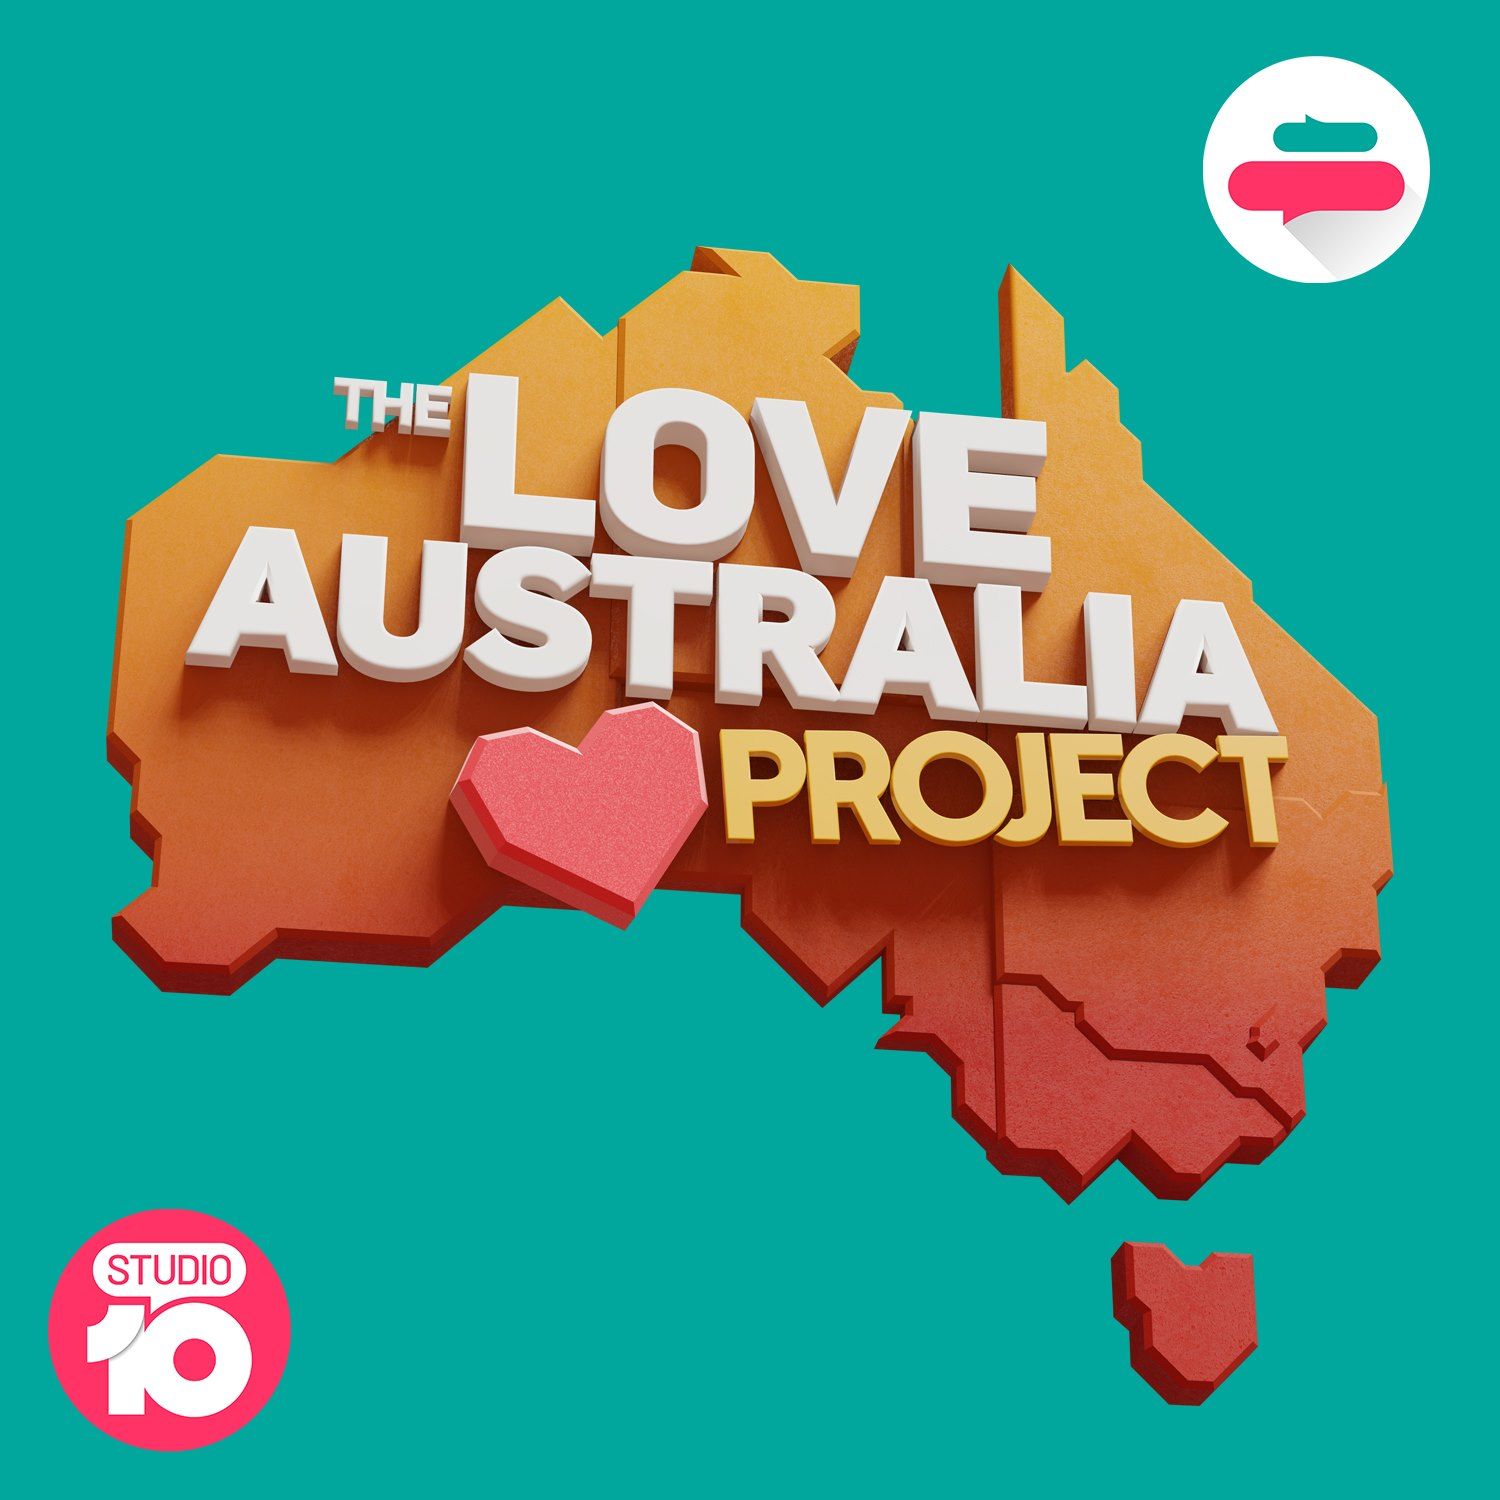 Grabyo helps Network 10 deliver the unique #LoveAustralia Project TV experience to Facebook Live